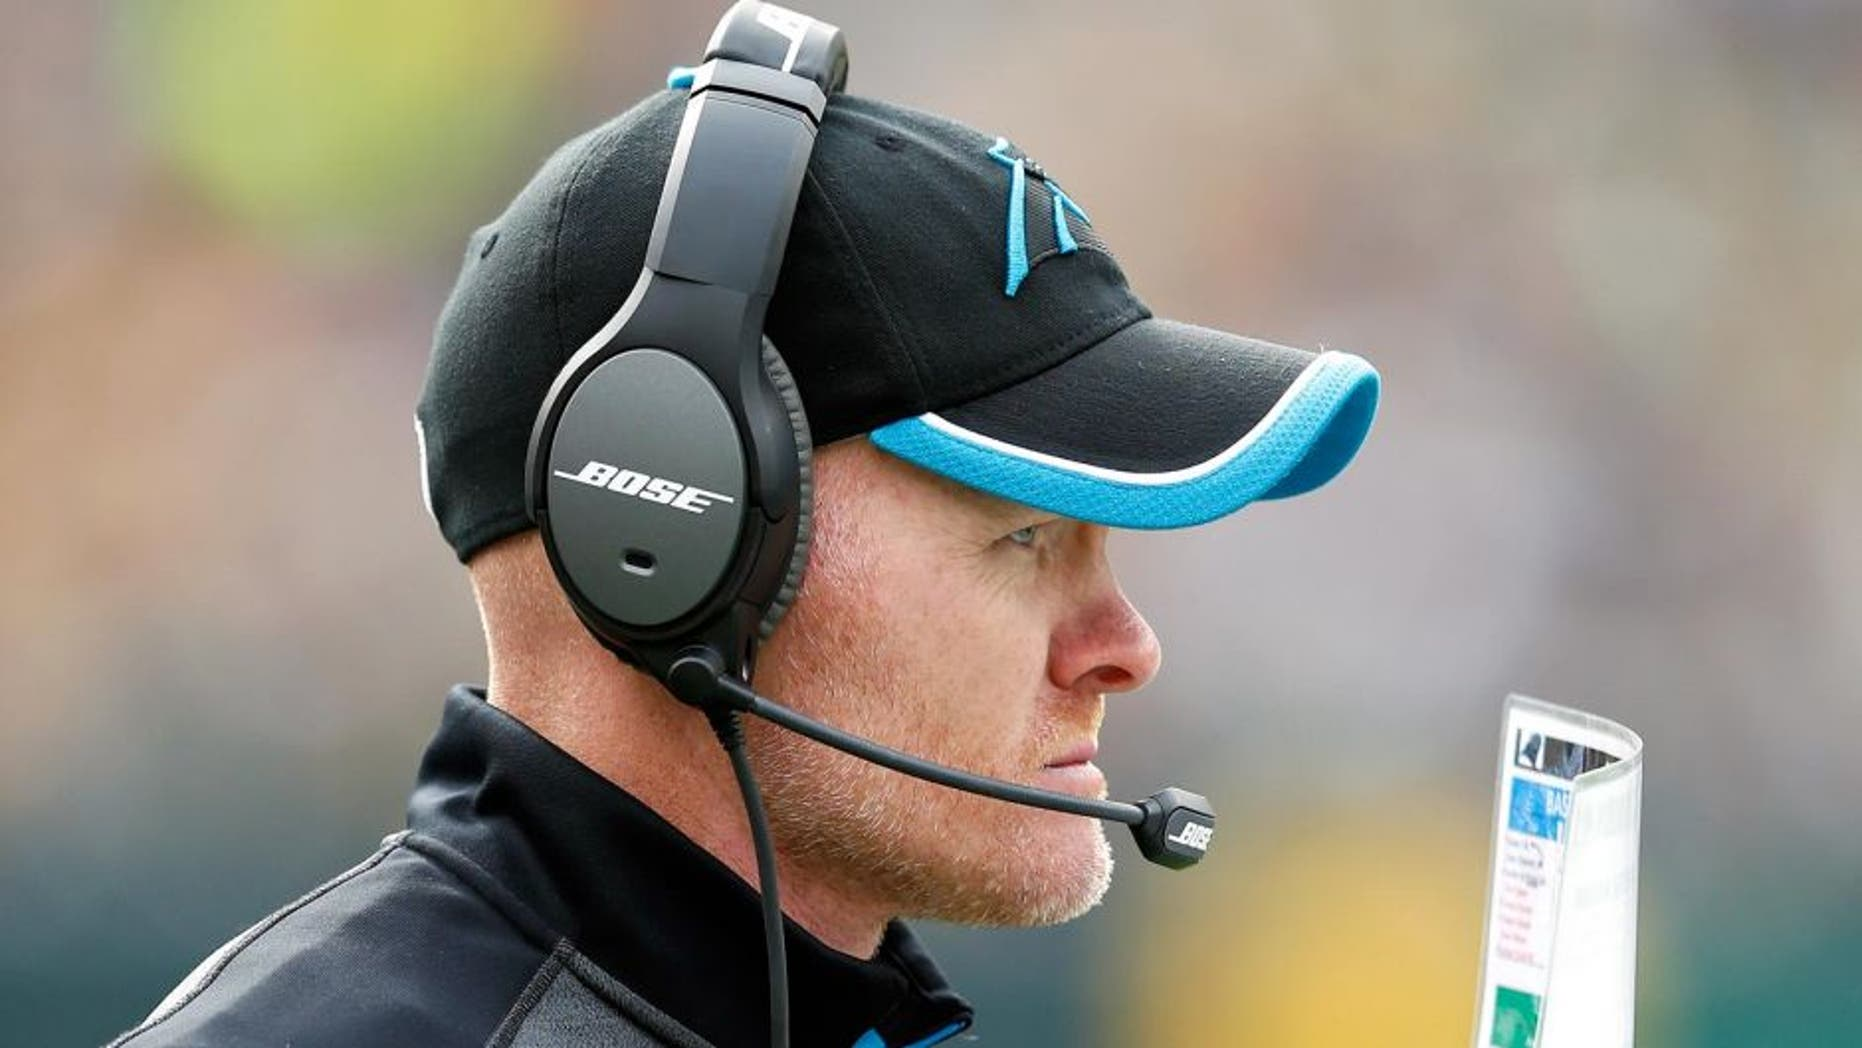 GREEN BAY, WI - OCTOBER 19: Defensive coordinator Sean McDermott of the Carolina Panthers looks on during the game against the Green Bay Packers at Lambeau Field on October 19, 2014 in Green Bay, Wisconsin. The Packers defeated the Panthers 38-17. (Photo by Joe Robbins/Getty Images) *** Local Caption *** Sean McDermott